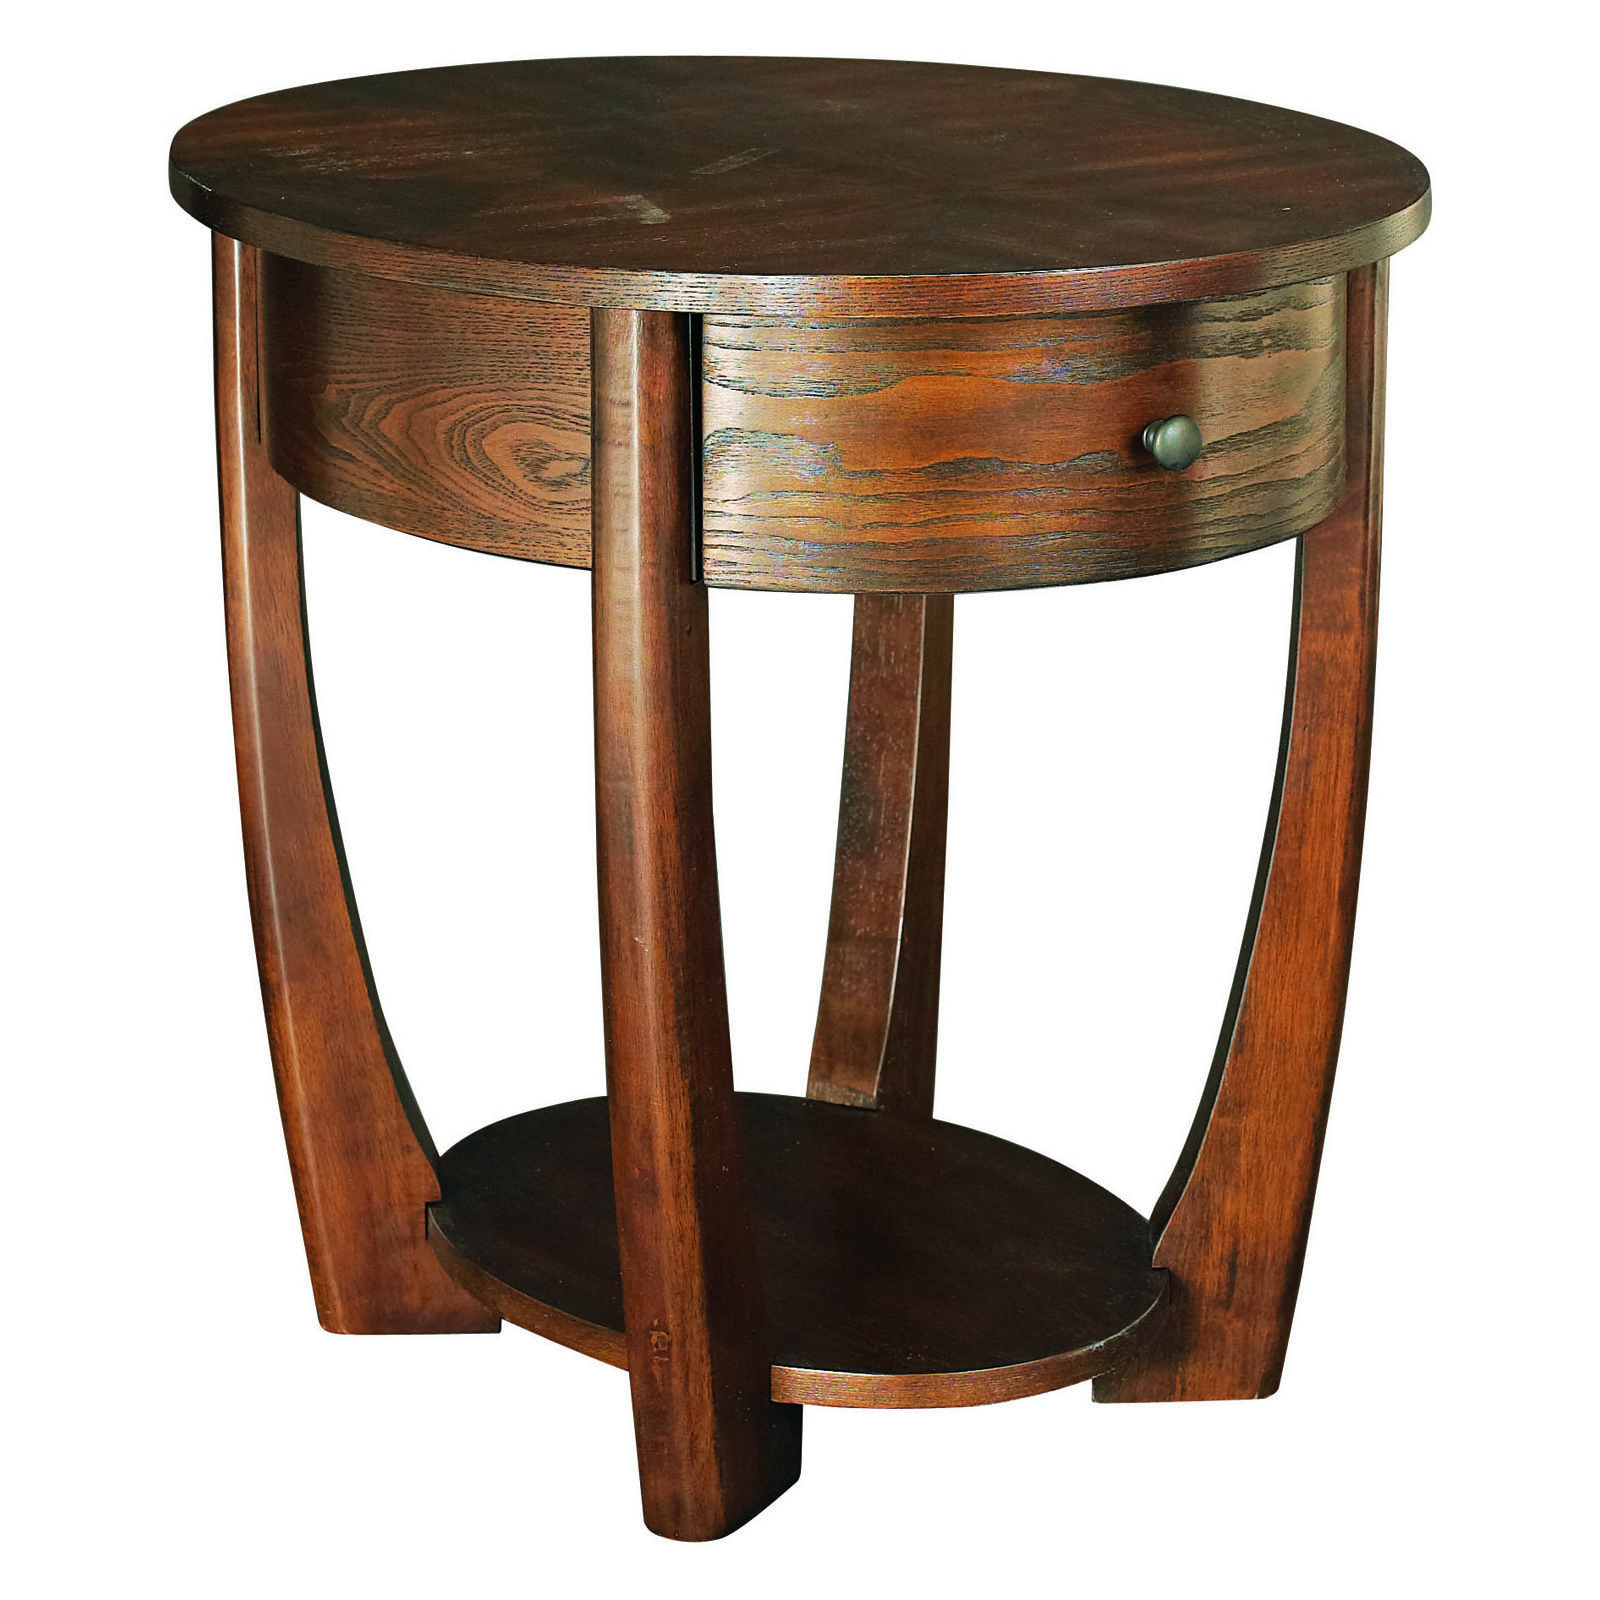 Hammary concierge oval end table tables at hayneedle